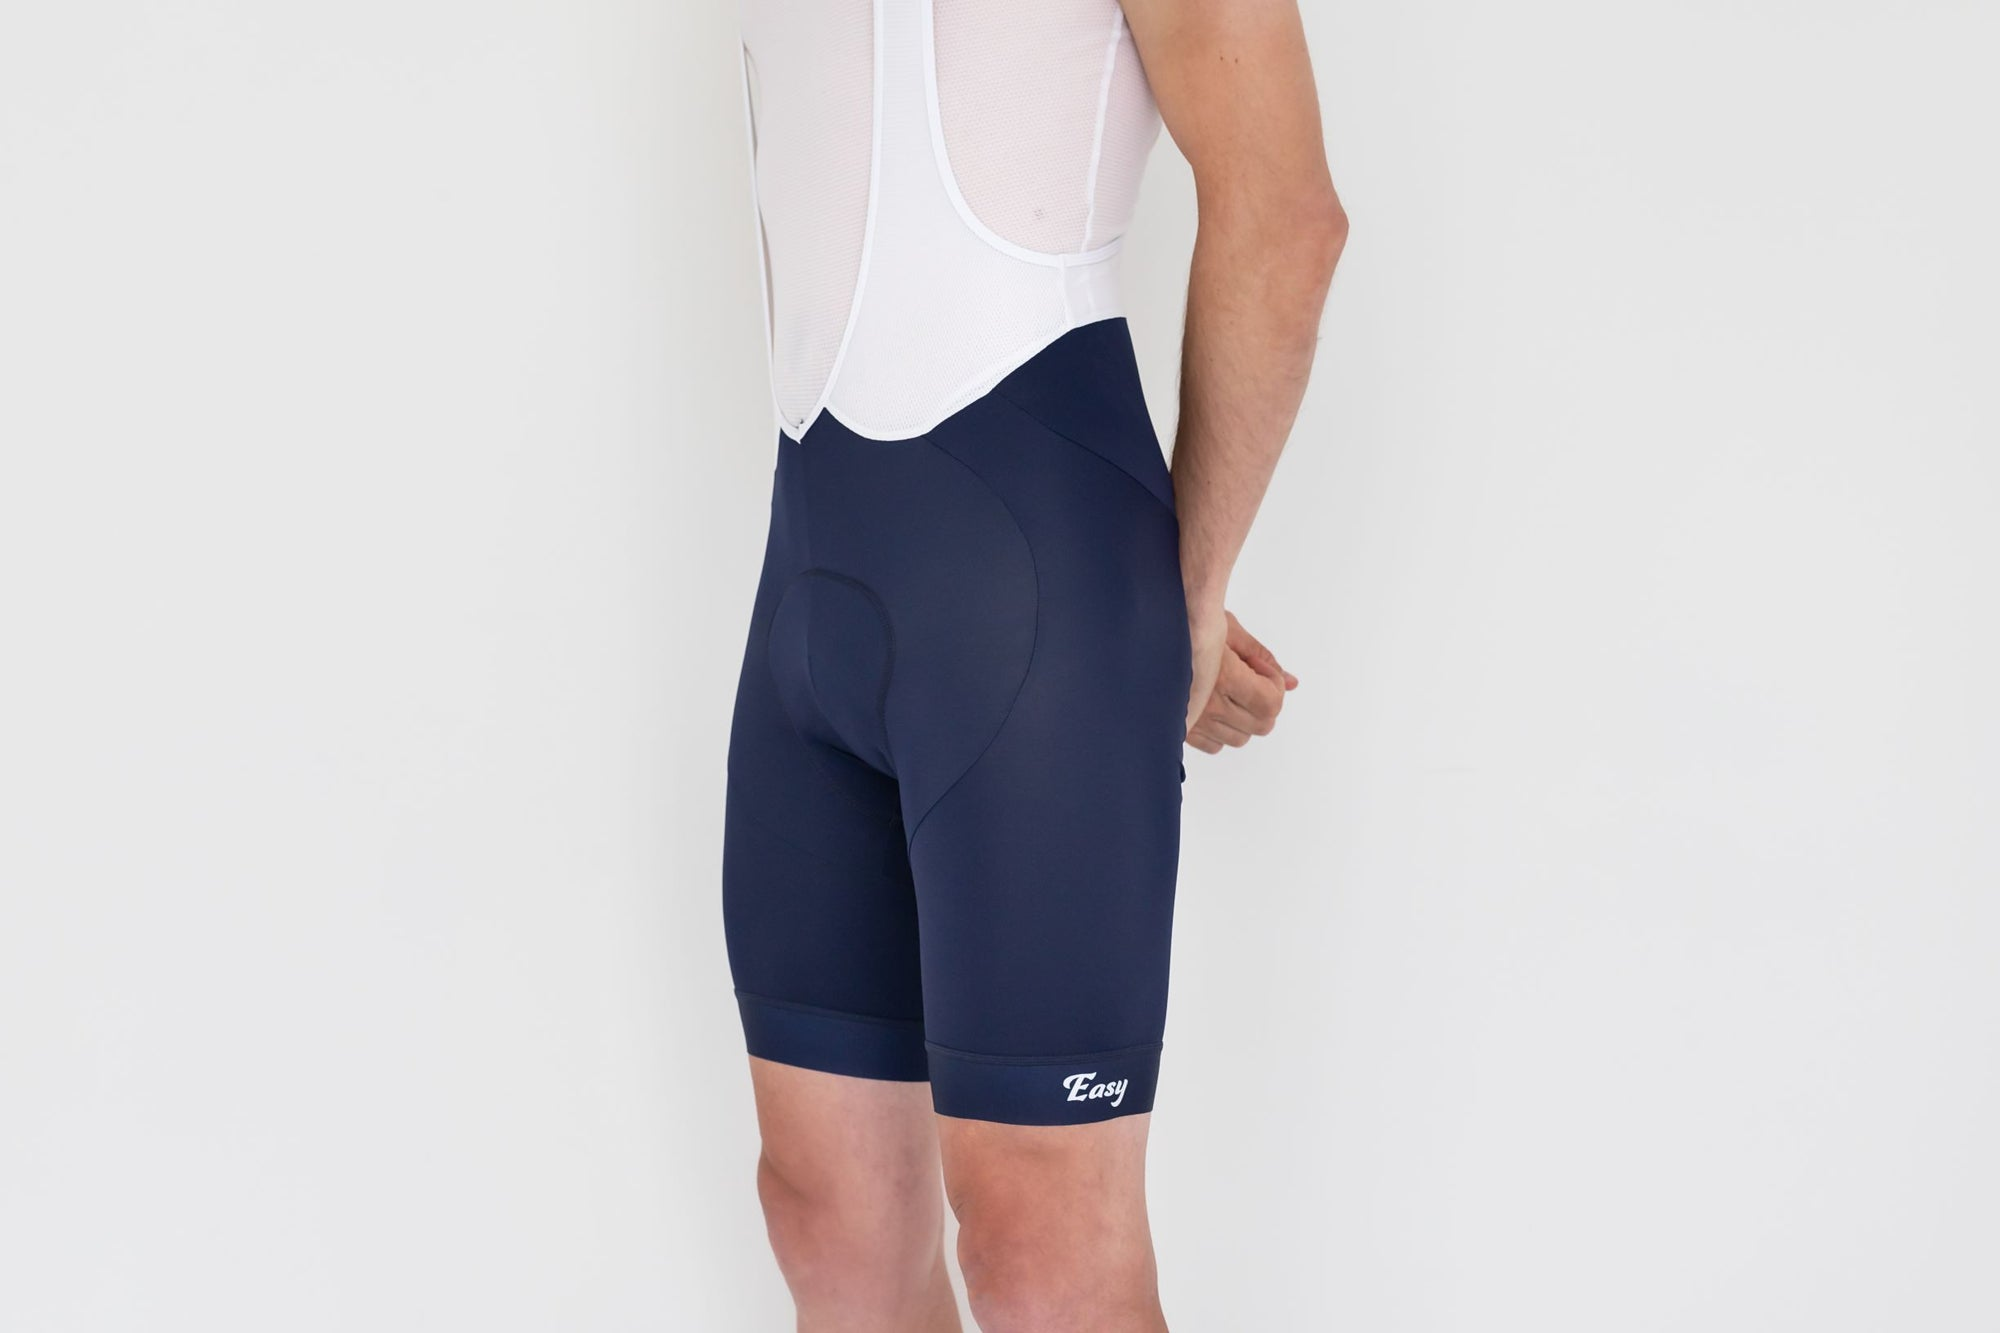 Breeze male cycling bib shorts